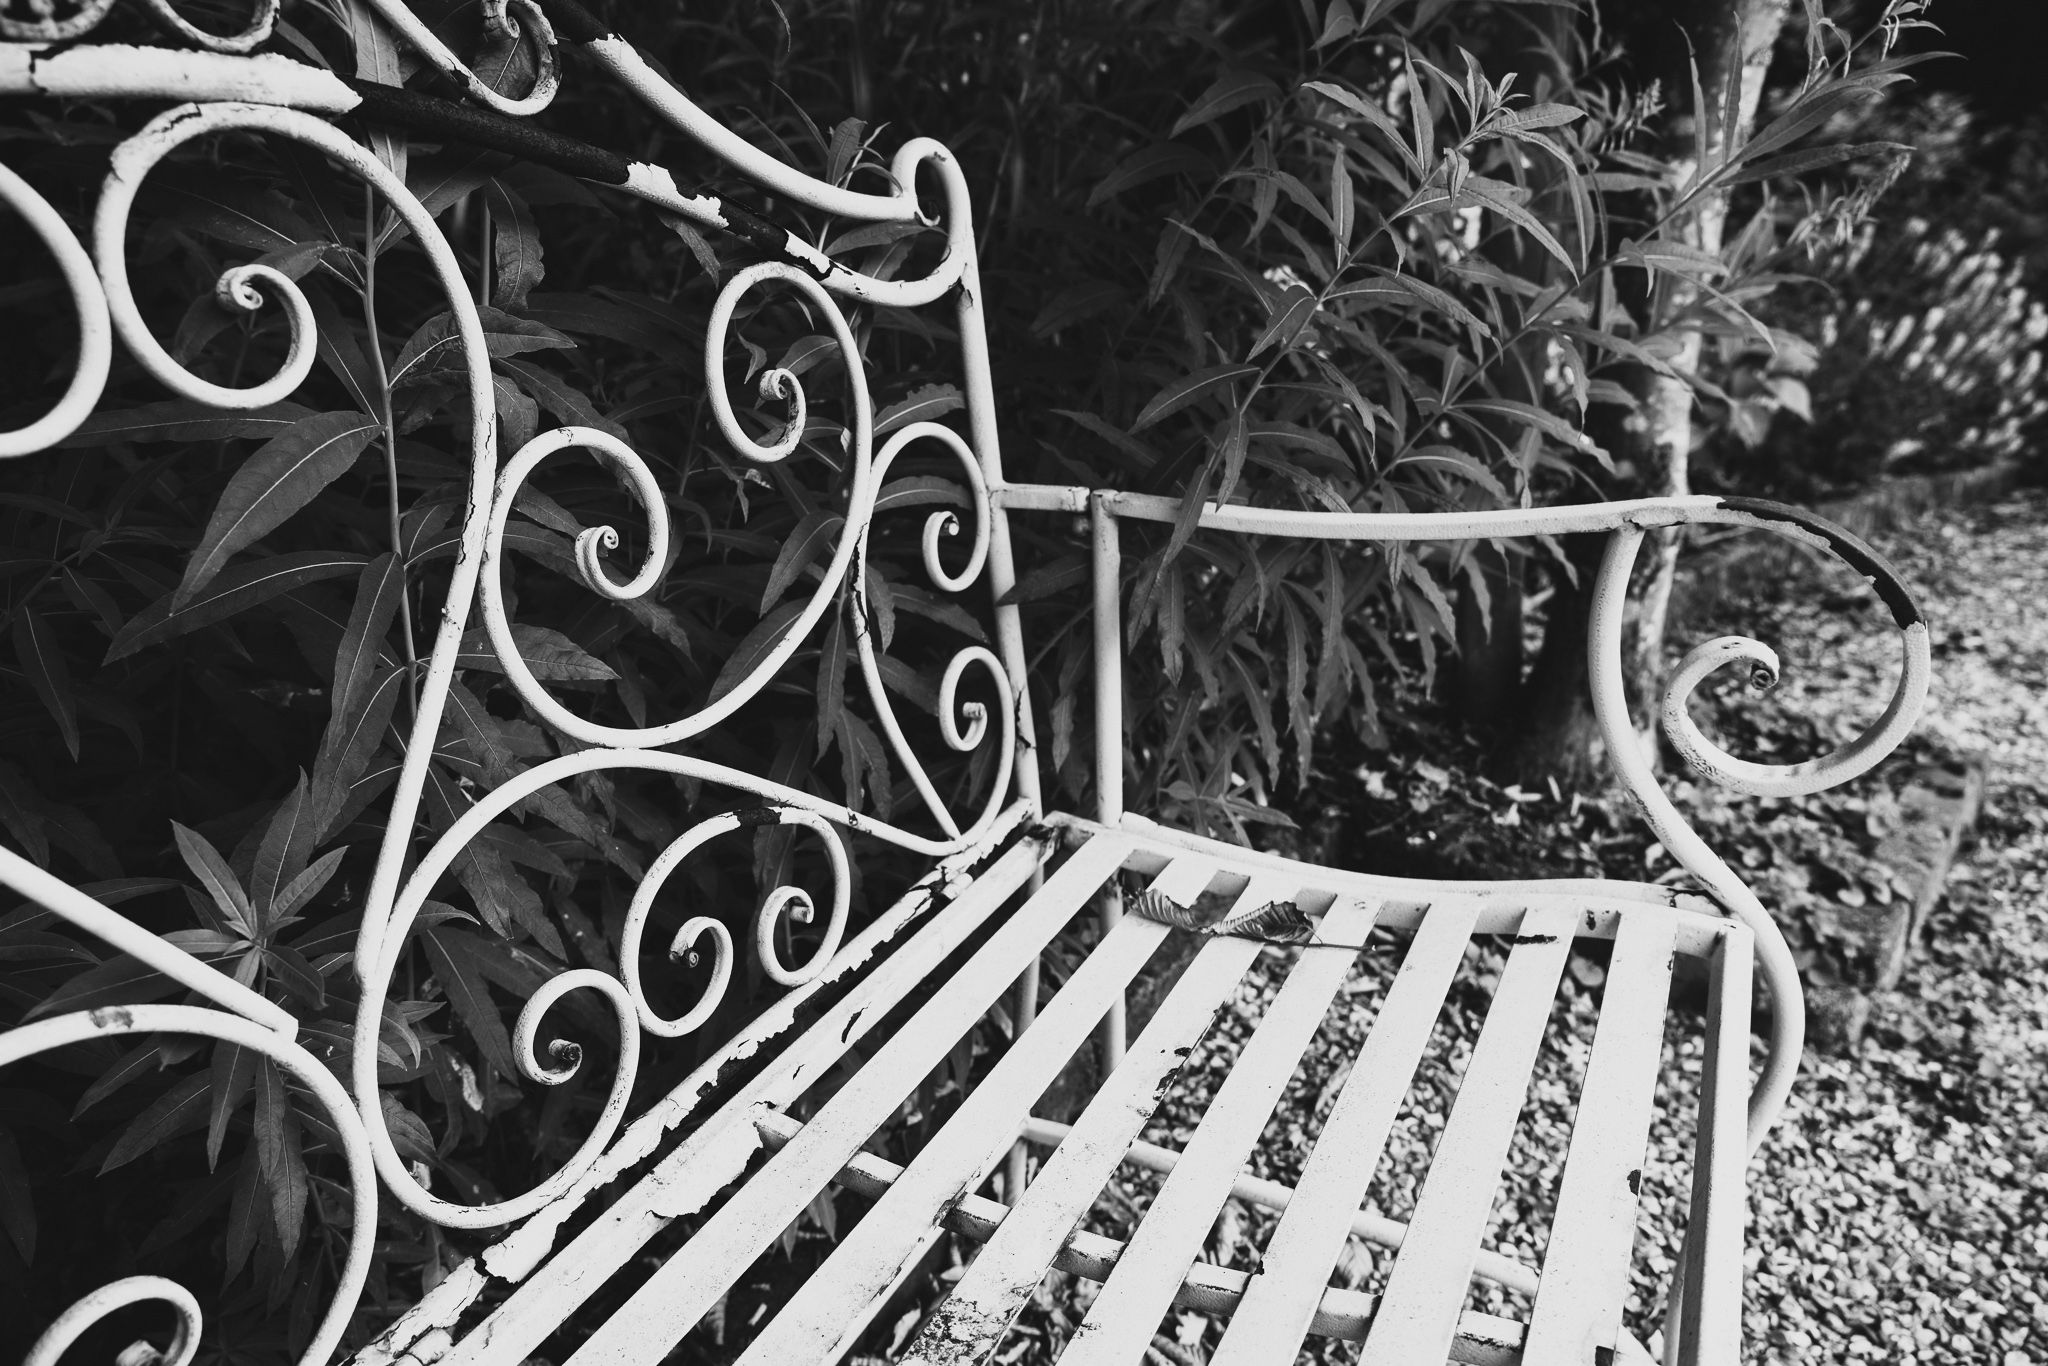 Wrought iron Garden bench (Black and white)